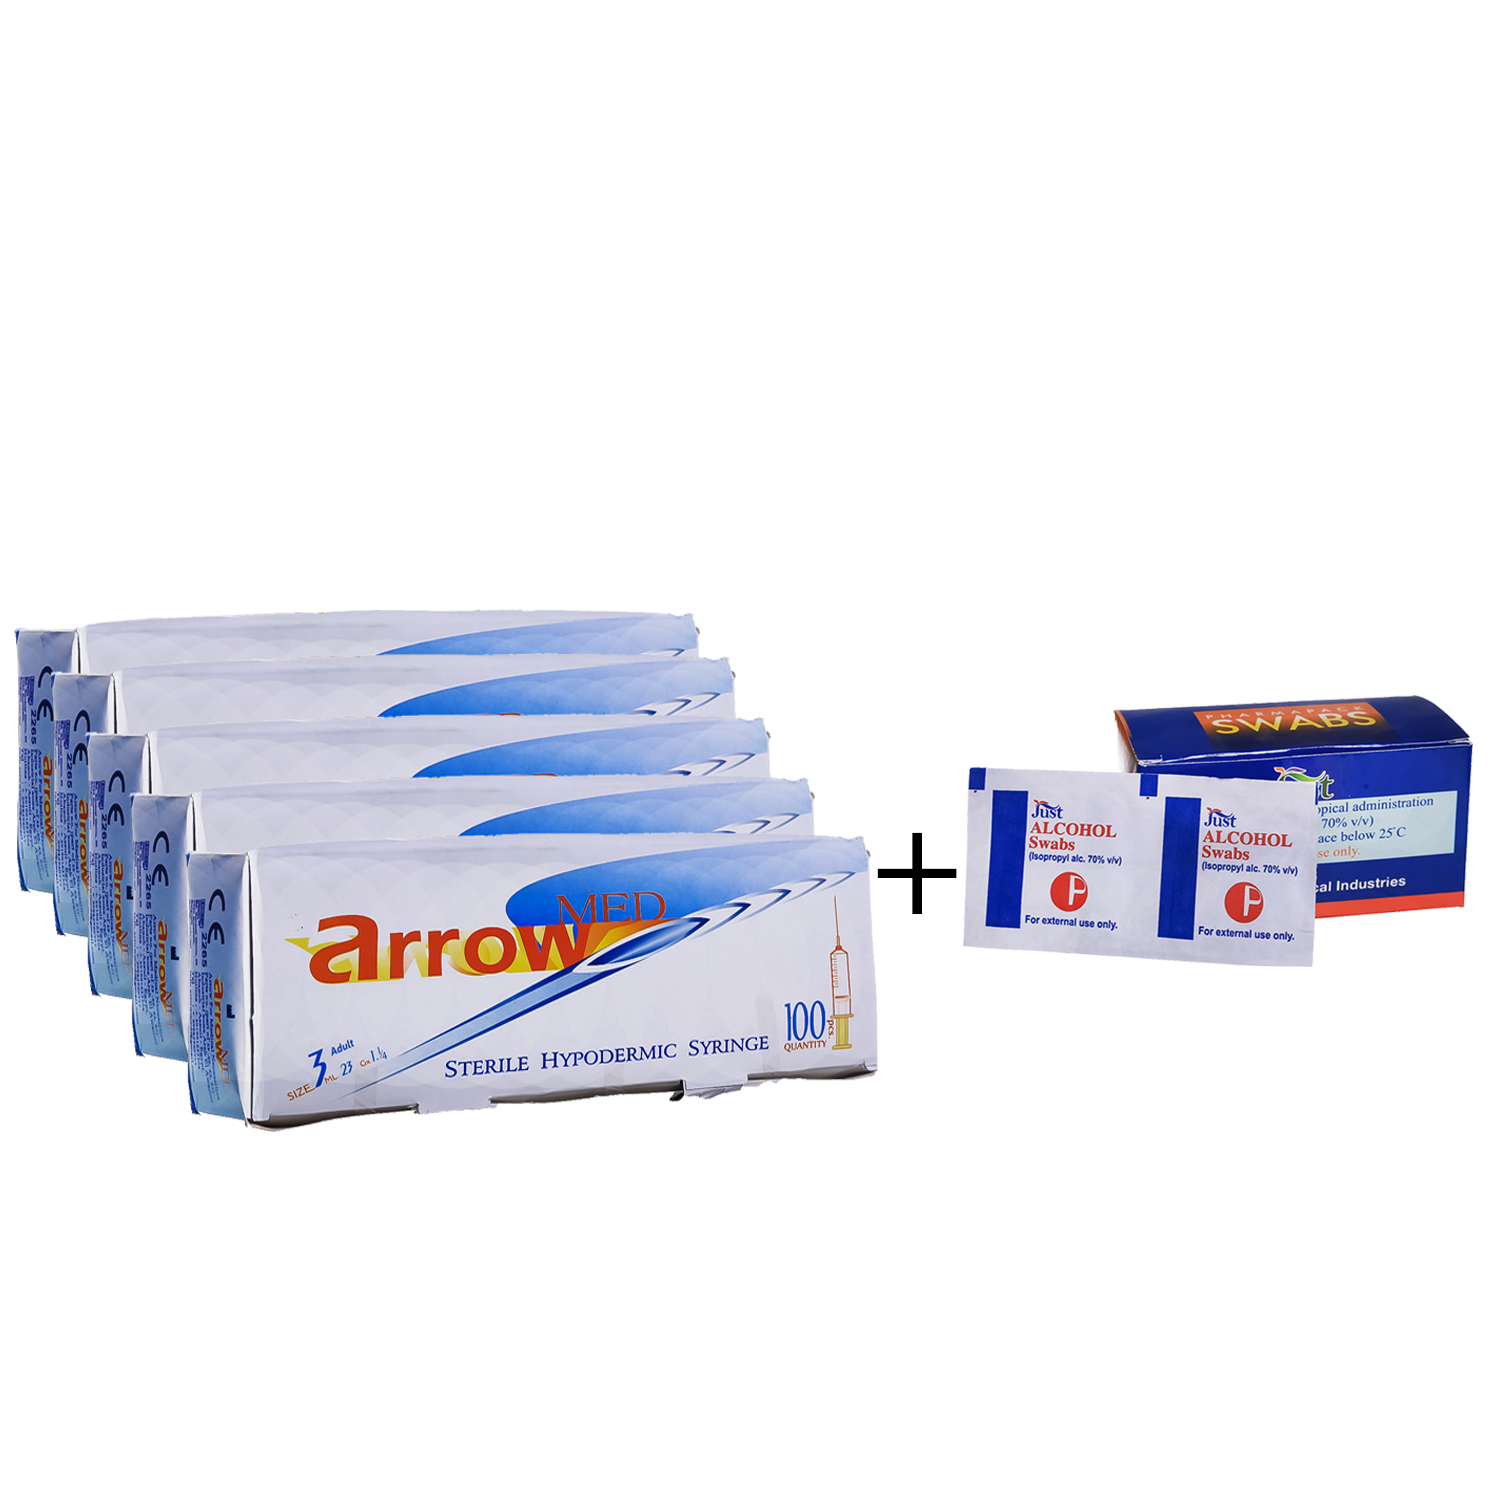 Arrow syringe 3 ml adult Offer